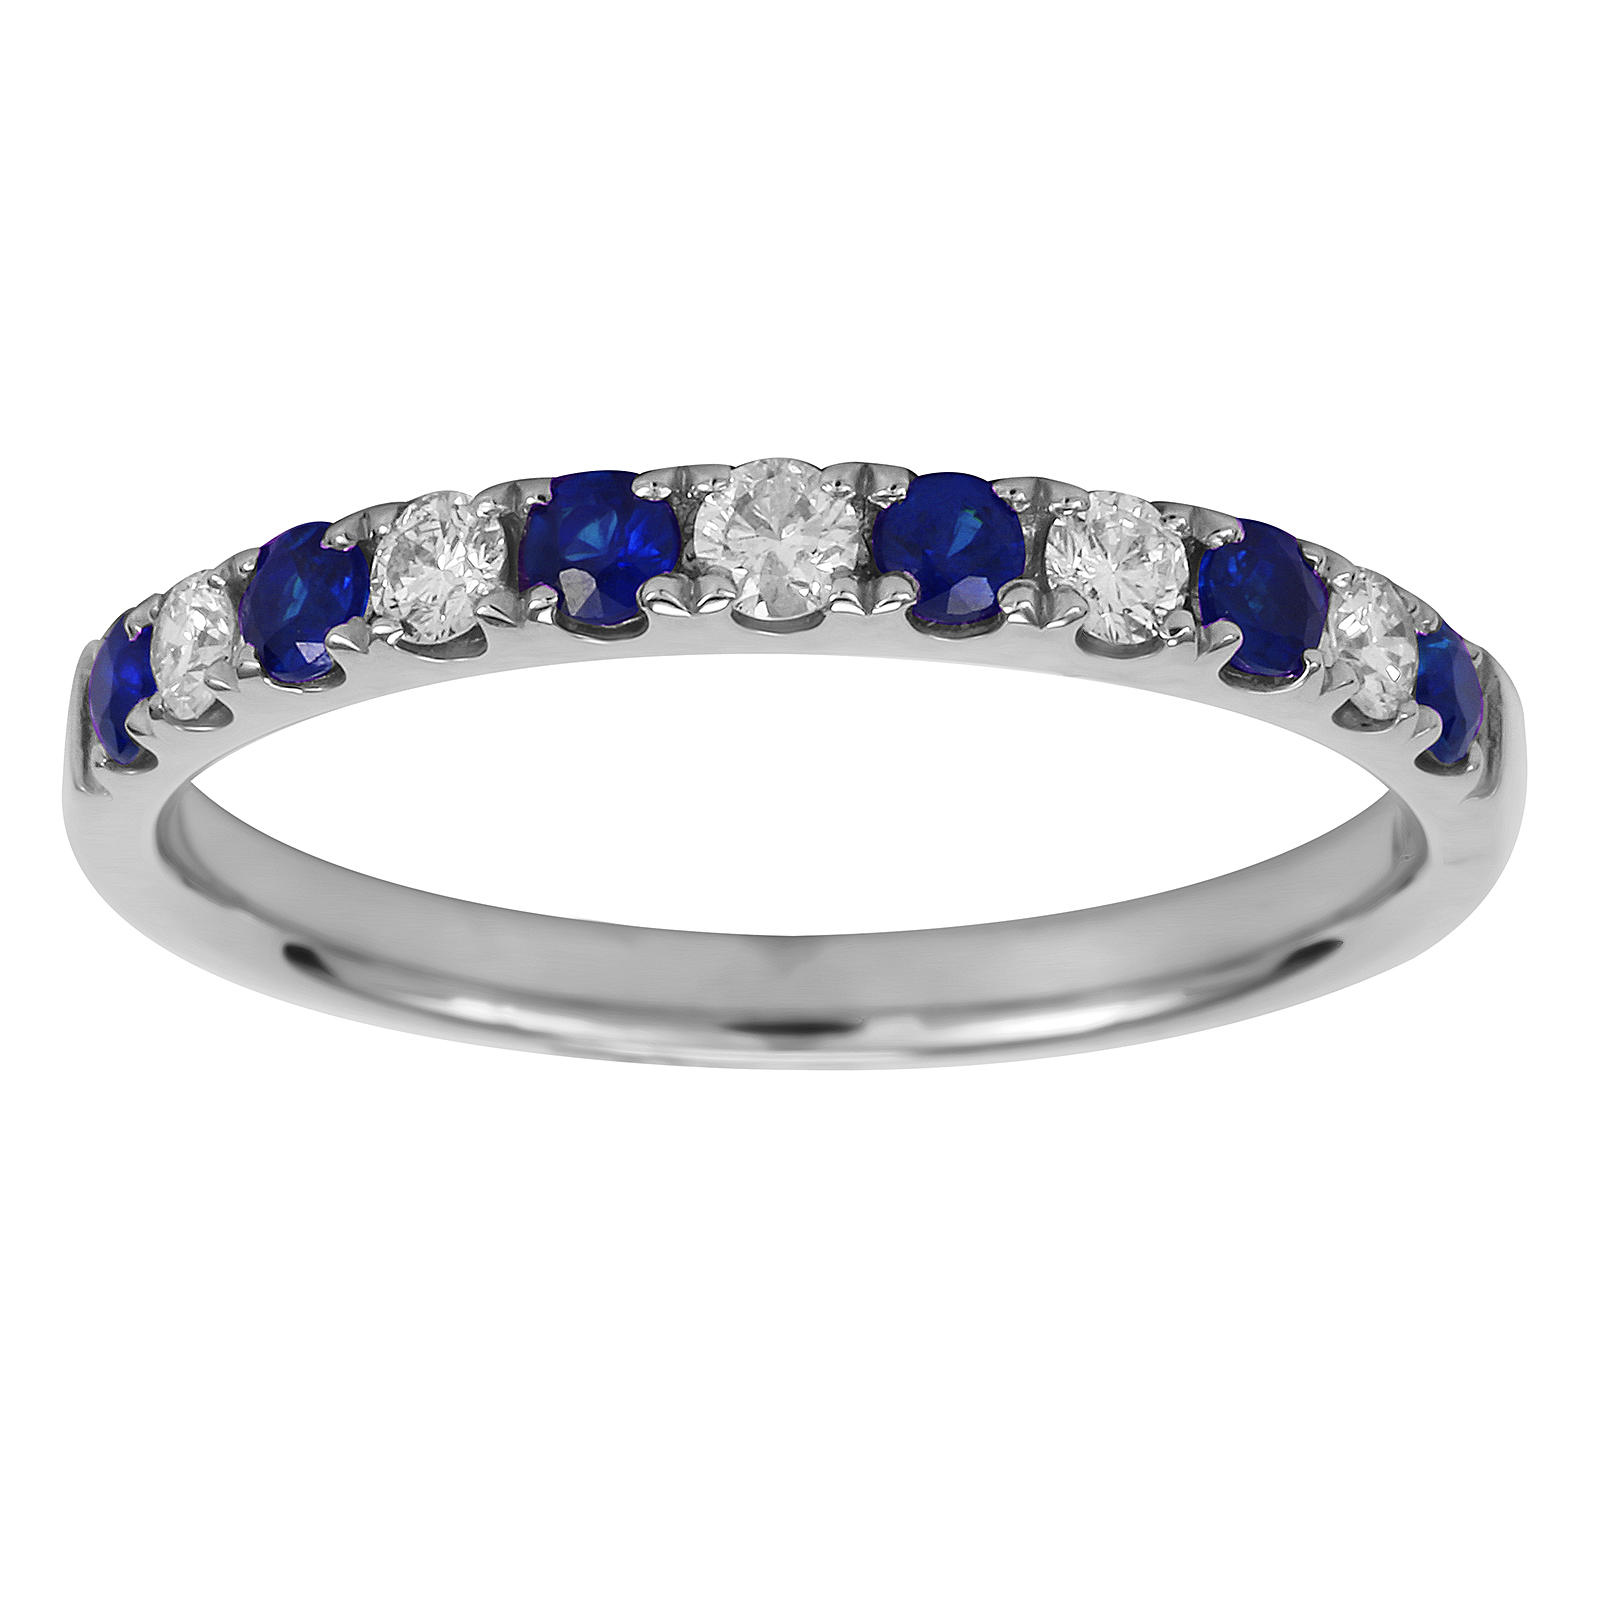 18ct White Gold 0.20ct Diamond & Sapphire Eternity Rings - Ring Size J